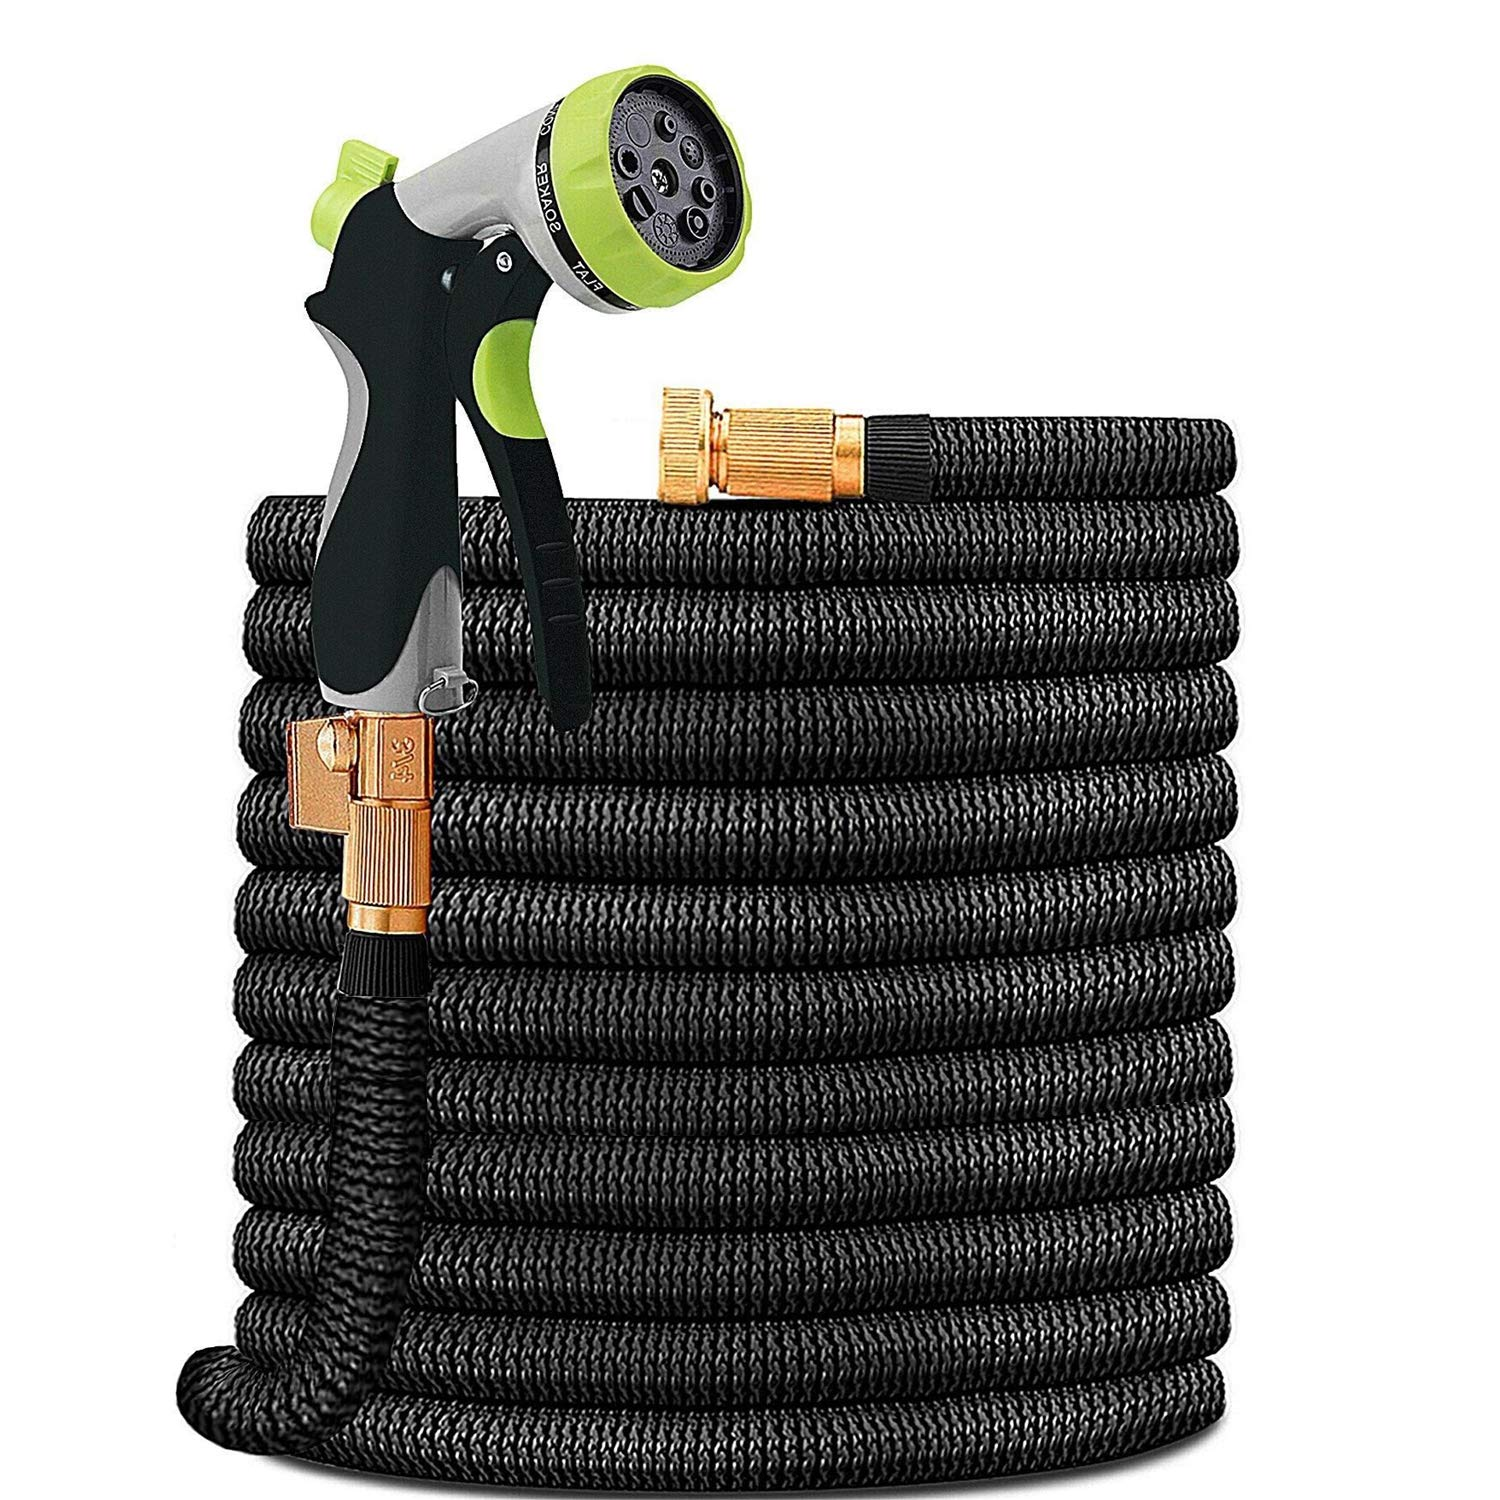 HYRIXDIRECT Garden Hose Lightweight Durable Flexible Water Hose with 3/4 Nozzle Solid Brass Connector and High Pressure Water Spray Nozzle Expanding Hoses (75 Ft)